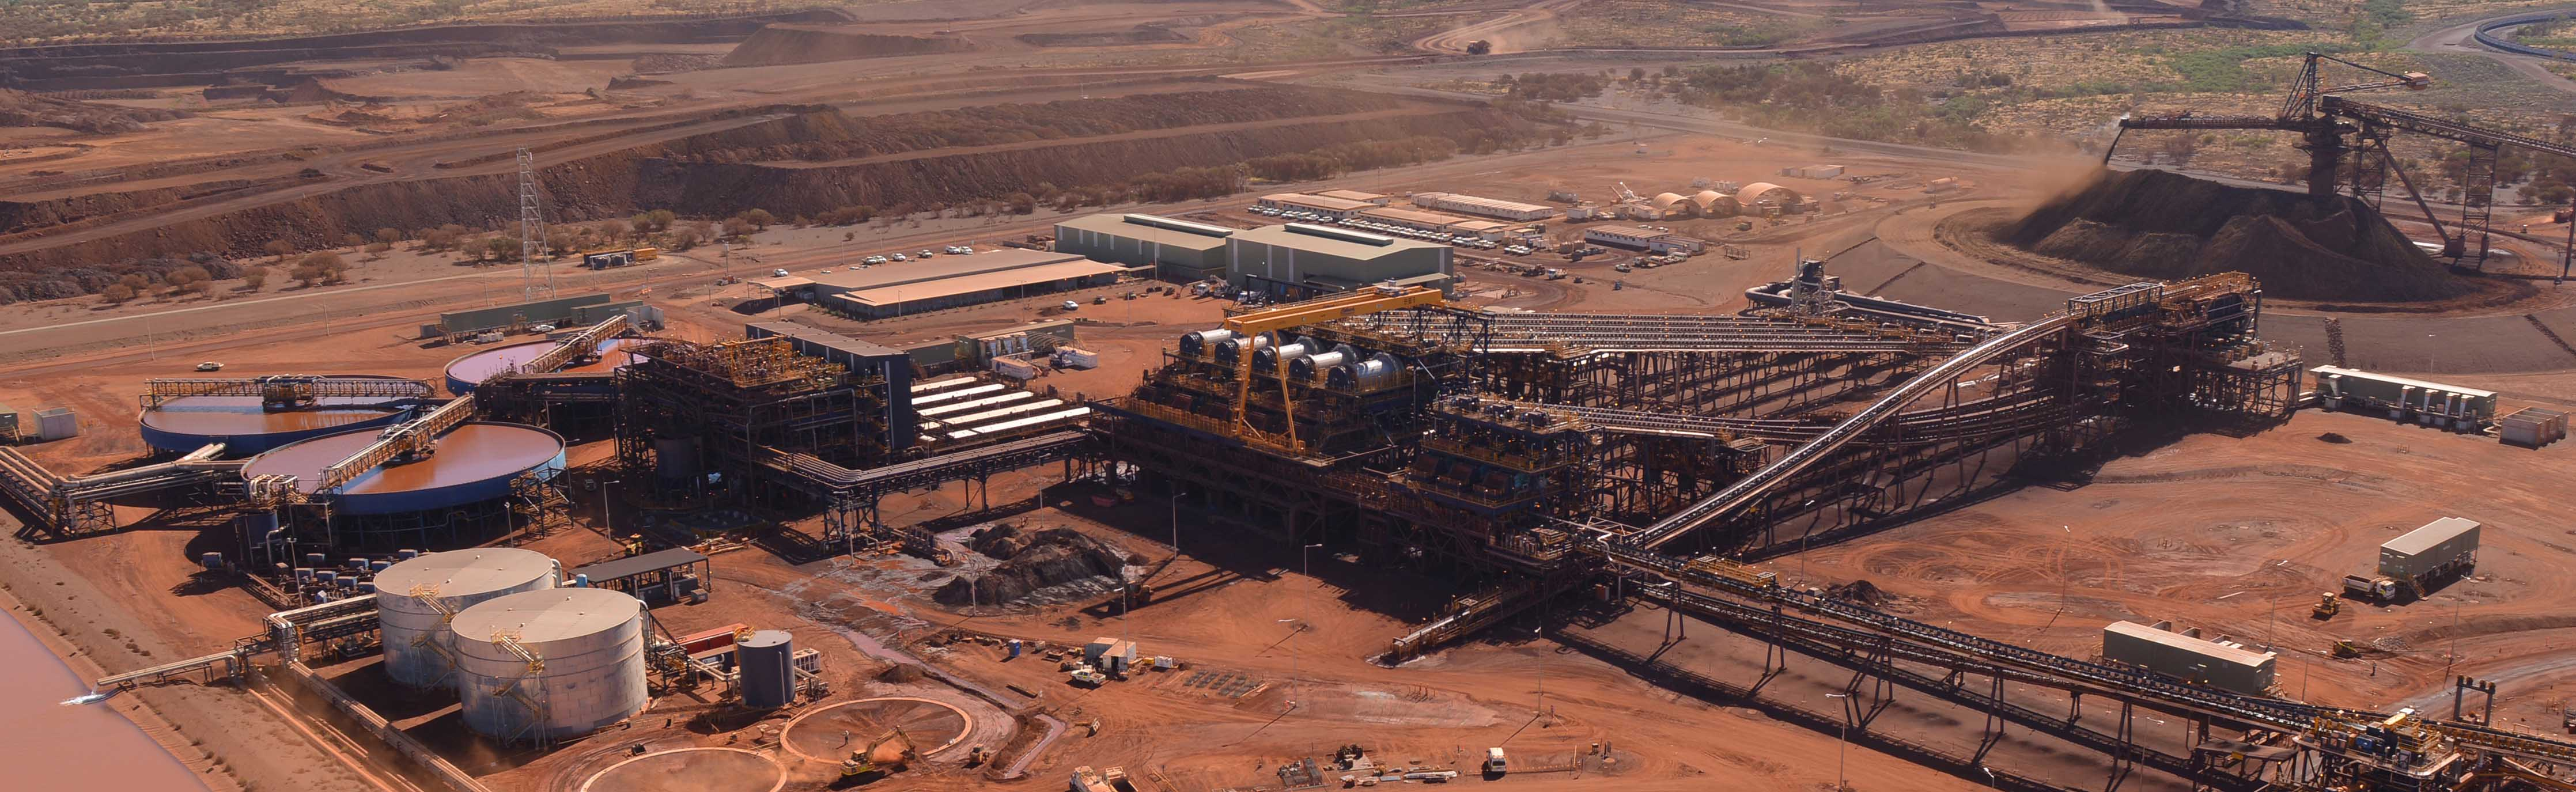 Mining Engineer Water Projects FIFO Mine Pilbara WA-iMINCO.net Mining Information